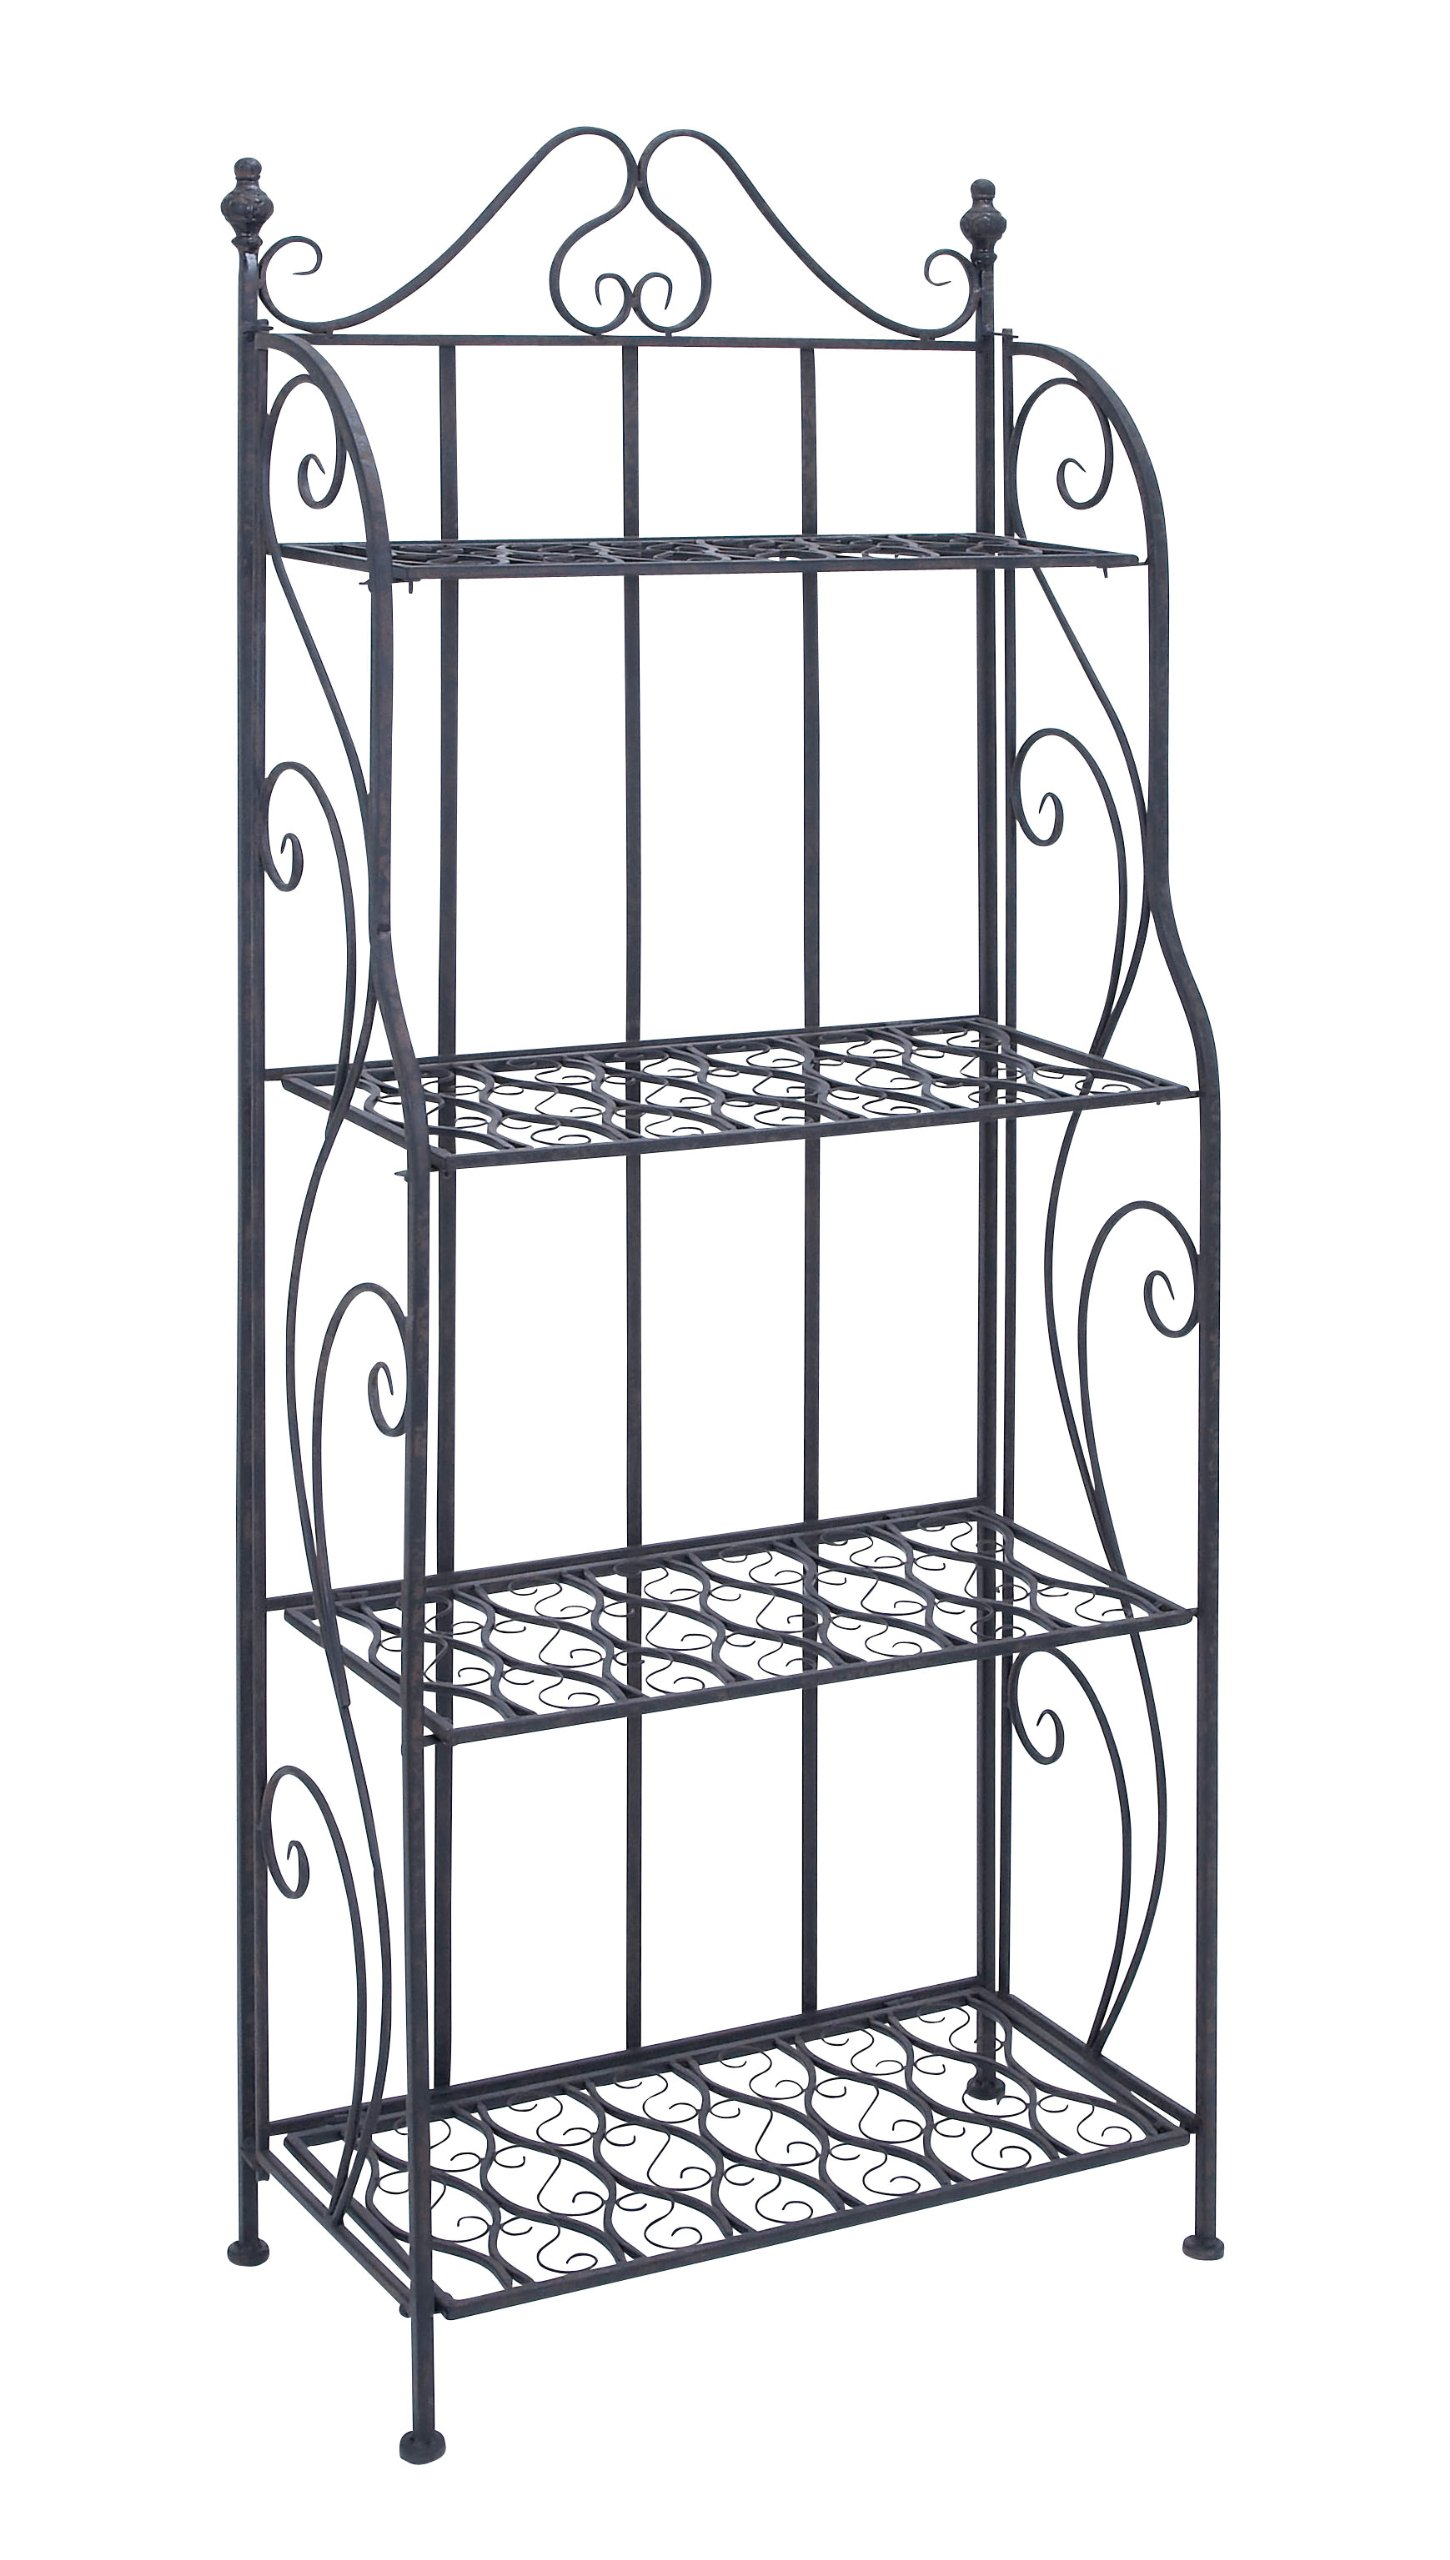 Deco 79 Metal Bakers Rack, 64-Inch by 25-Inch